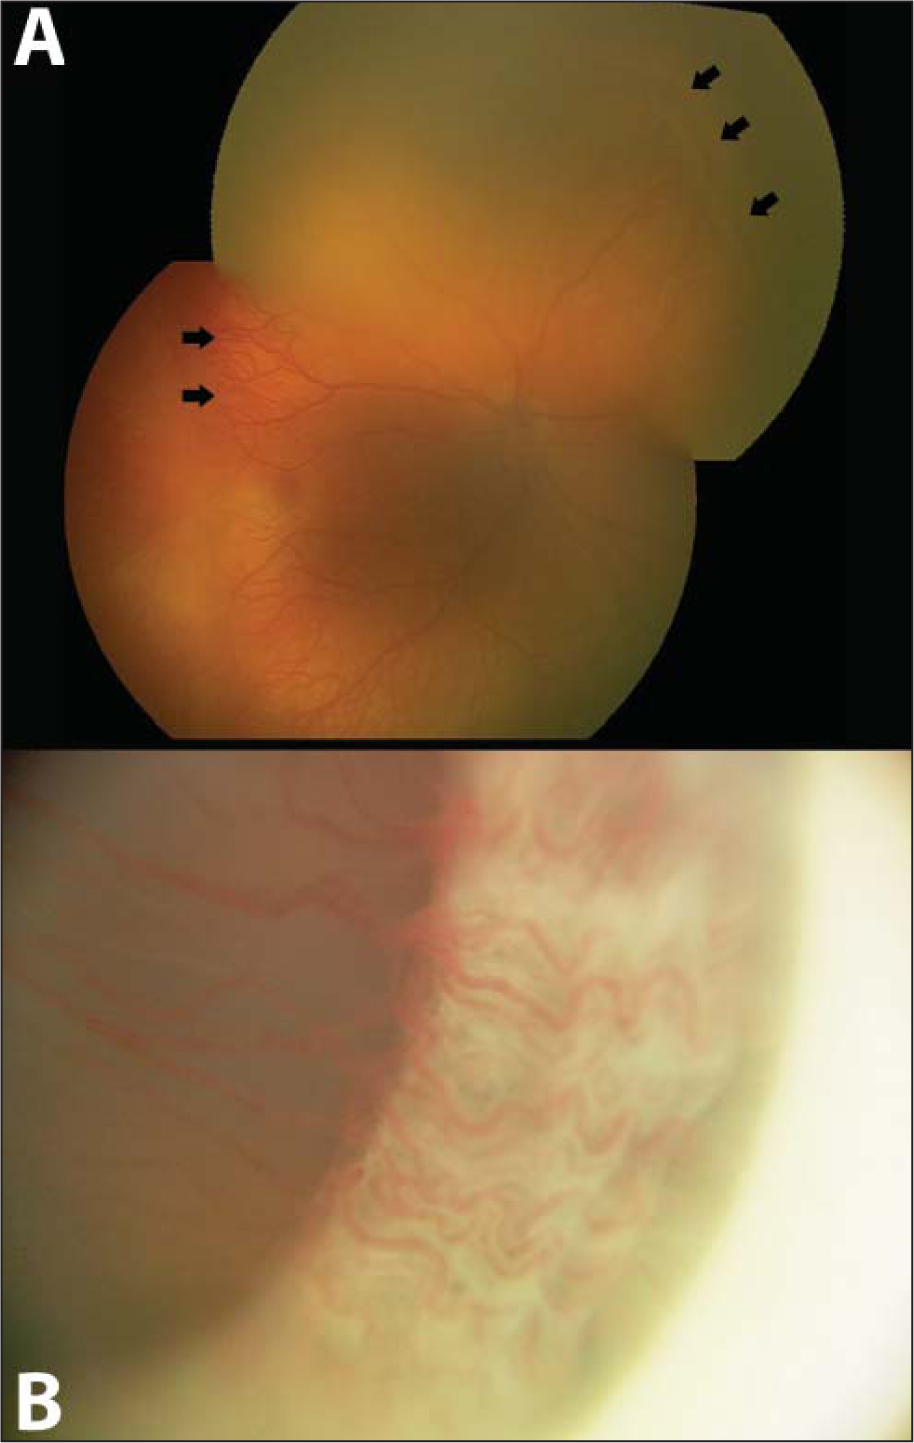 (A) RetCam fundus photograph (Clarity Medical Systems, Pleasanton, CA) of the right eye, which was limited by significant media opacity from a persistent tunica vasculosa lentis, showing zone 1, stage 3 (arrows) retinopathy of prematurity with plus disease. (B) RetCam anterior segment photograph of the right eye showing a prominent persistent tunica vasculosa lentis, with vessels extending from the peripheral iris all the way across the pupillary axis in a 360 degree fashion. Images were acquired using the RetCam D1300 lens, which can be used to image the fundus and anterior chamber of pediatric patients.